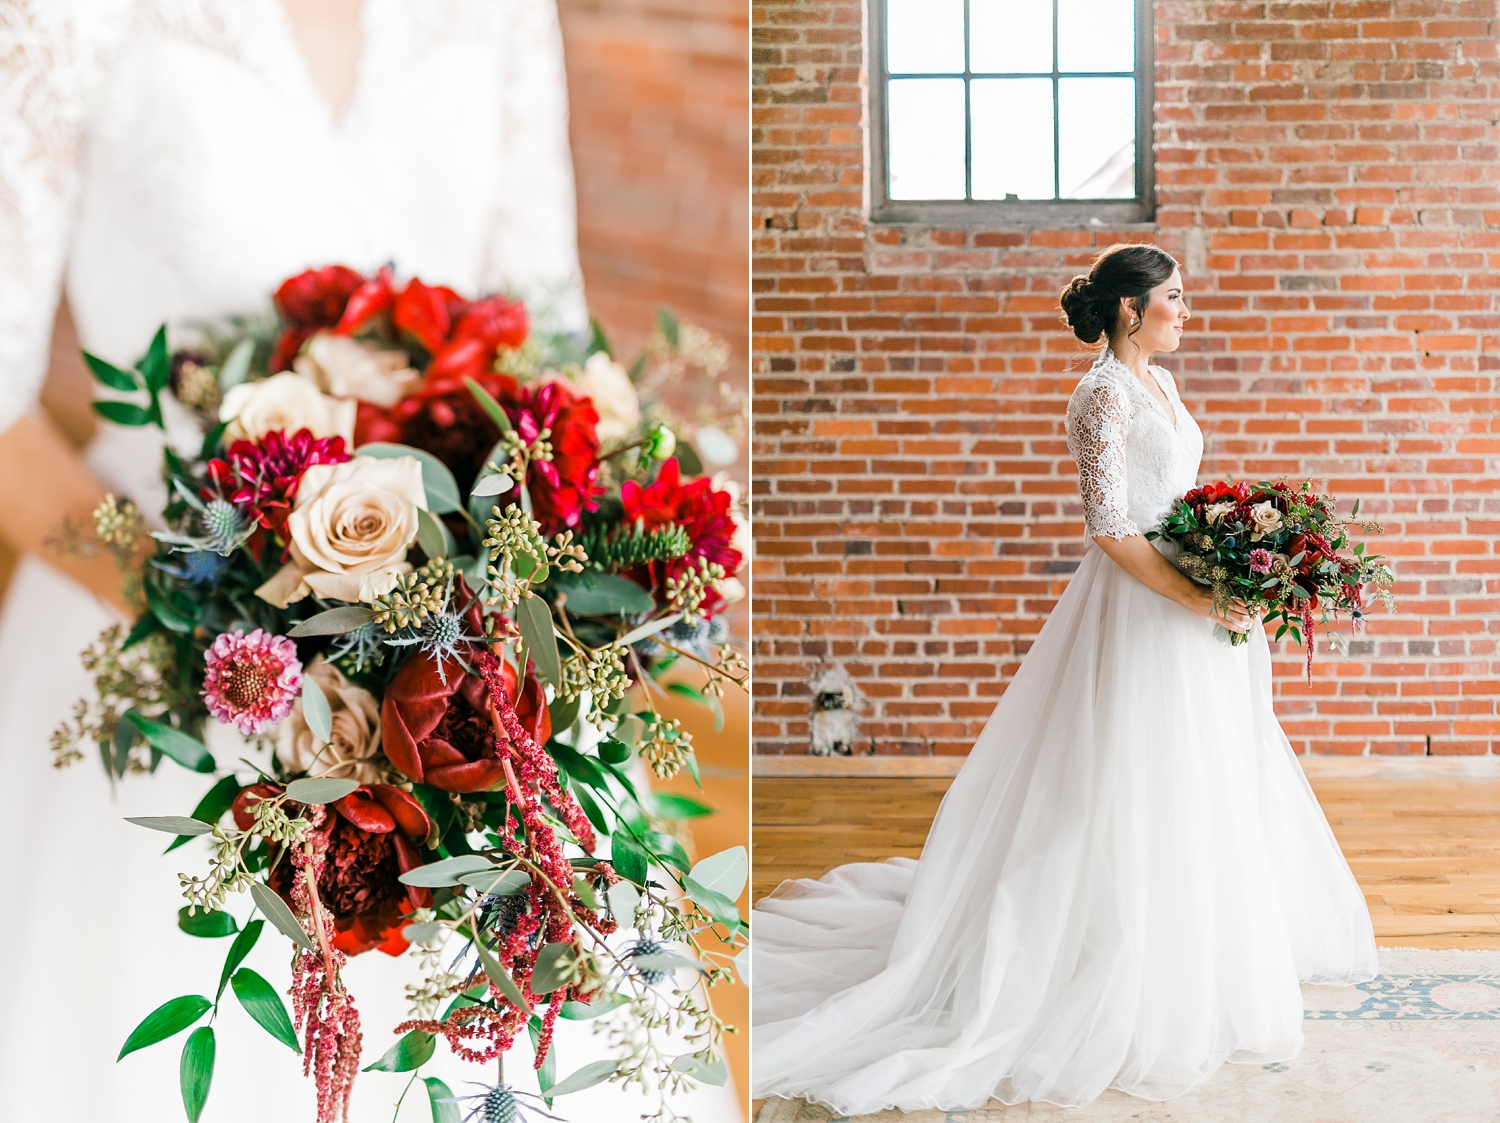 bridal portraits with ballgown and flowers by Melissa timm